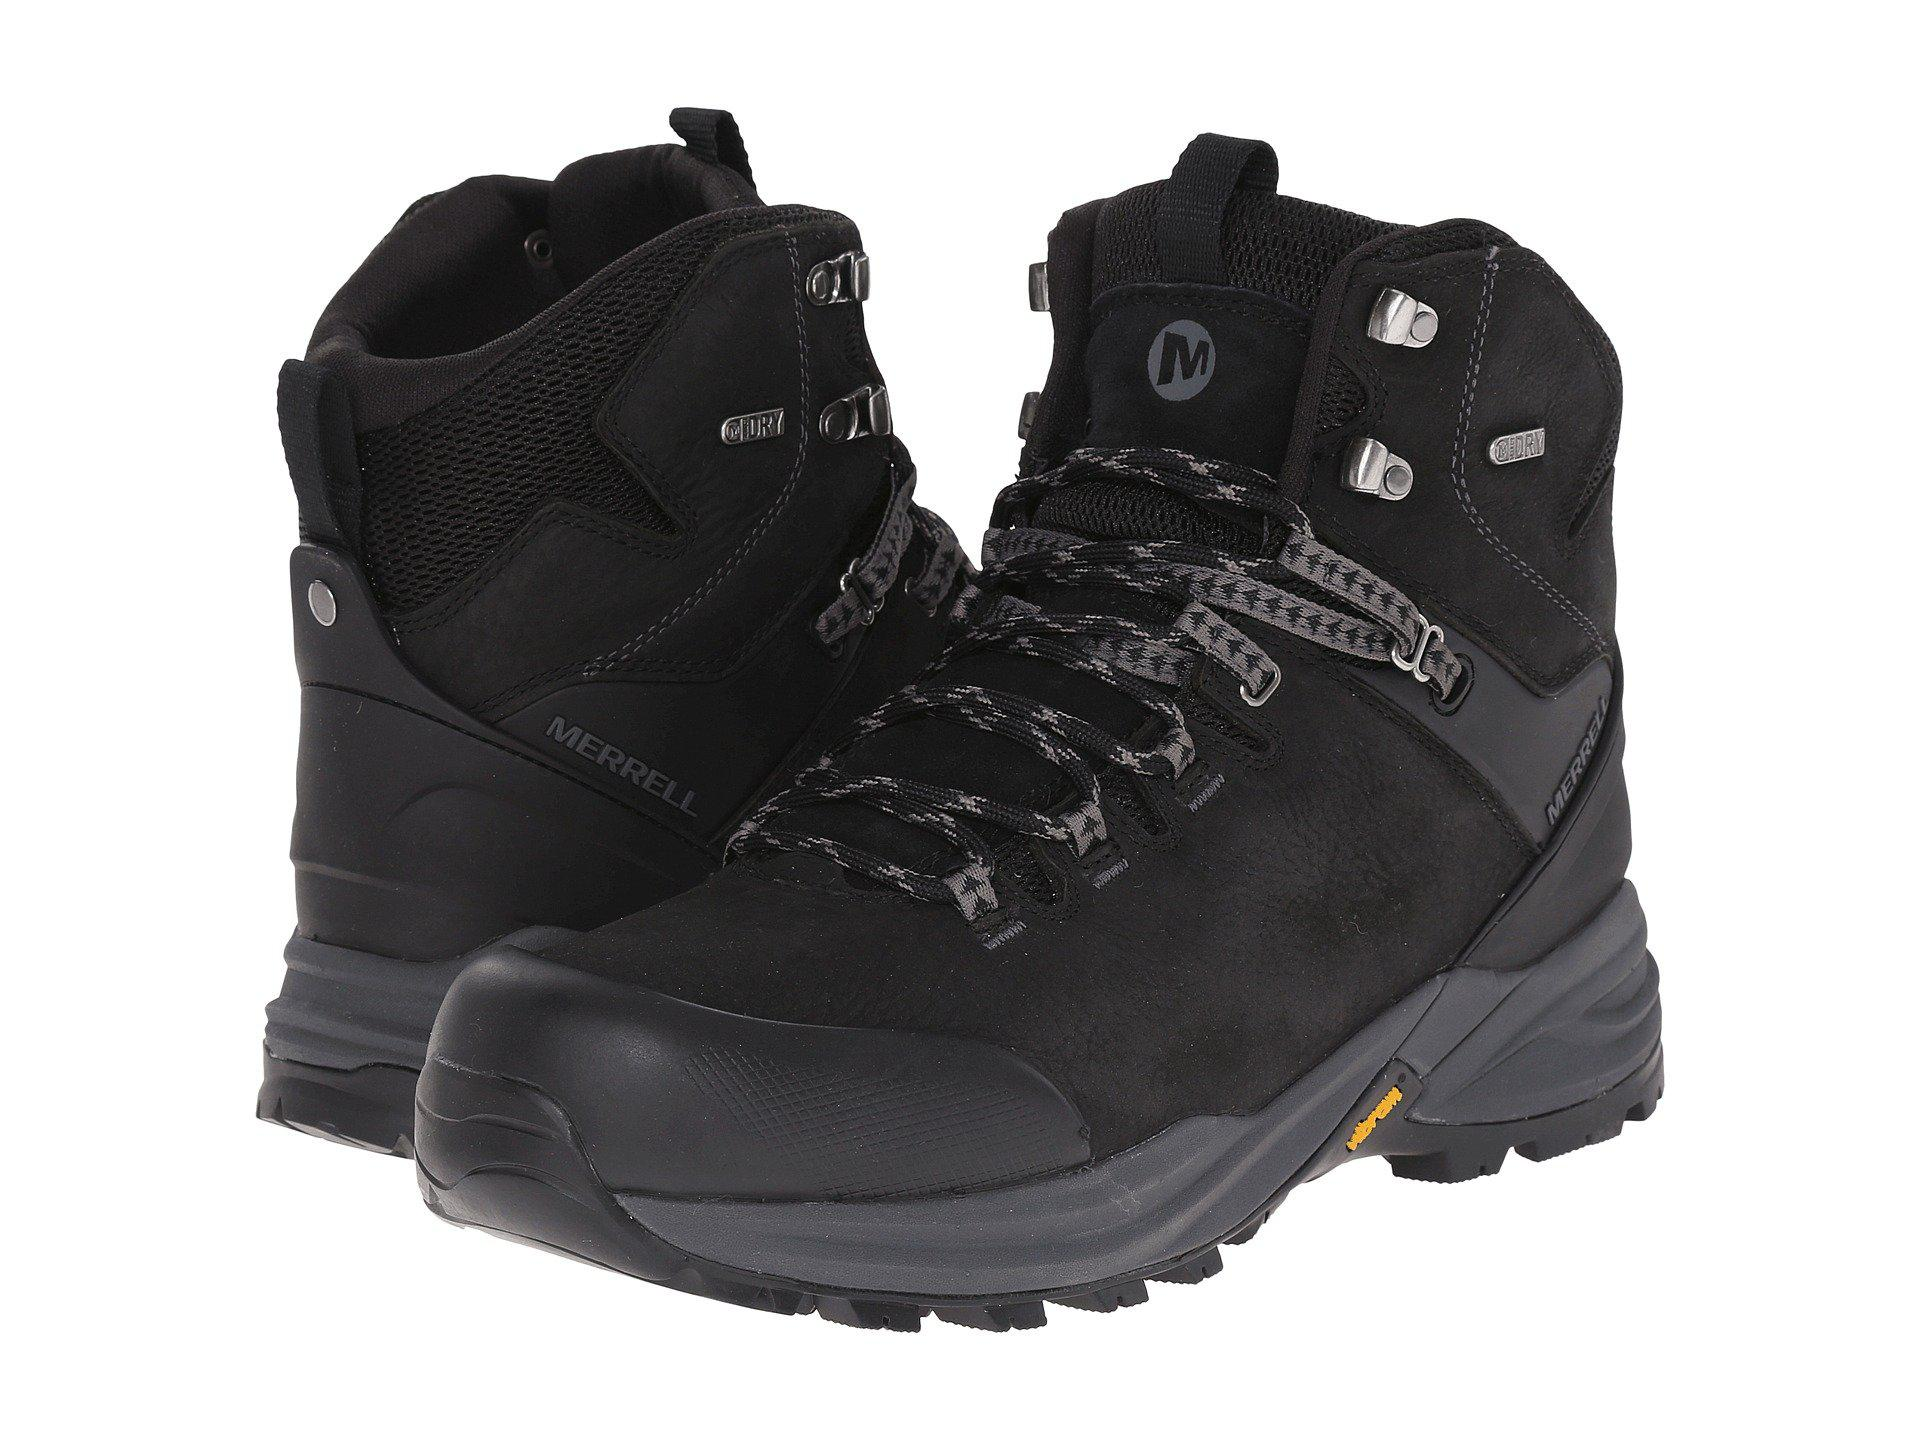 6dfbf2f23e8 Lyst - Merrell Phaserbound Waterproof in Black for Men